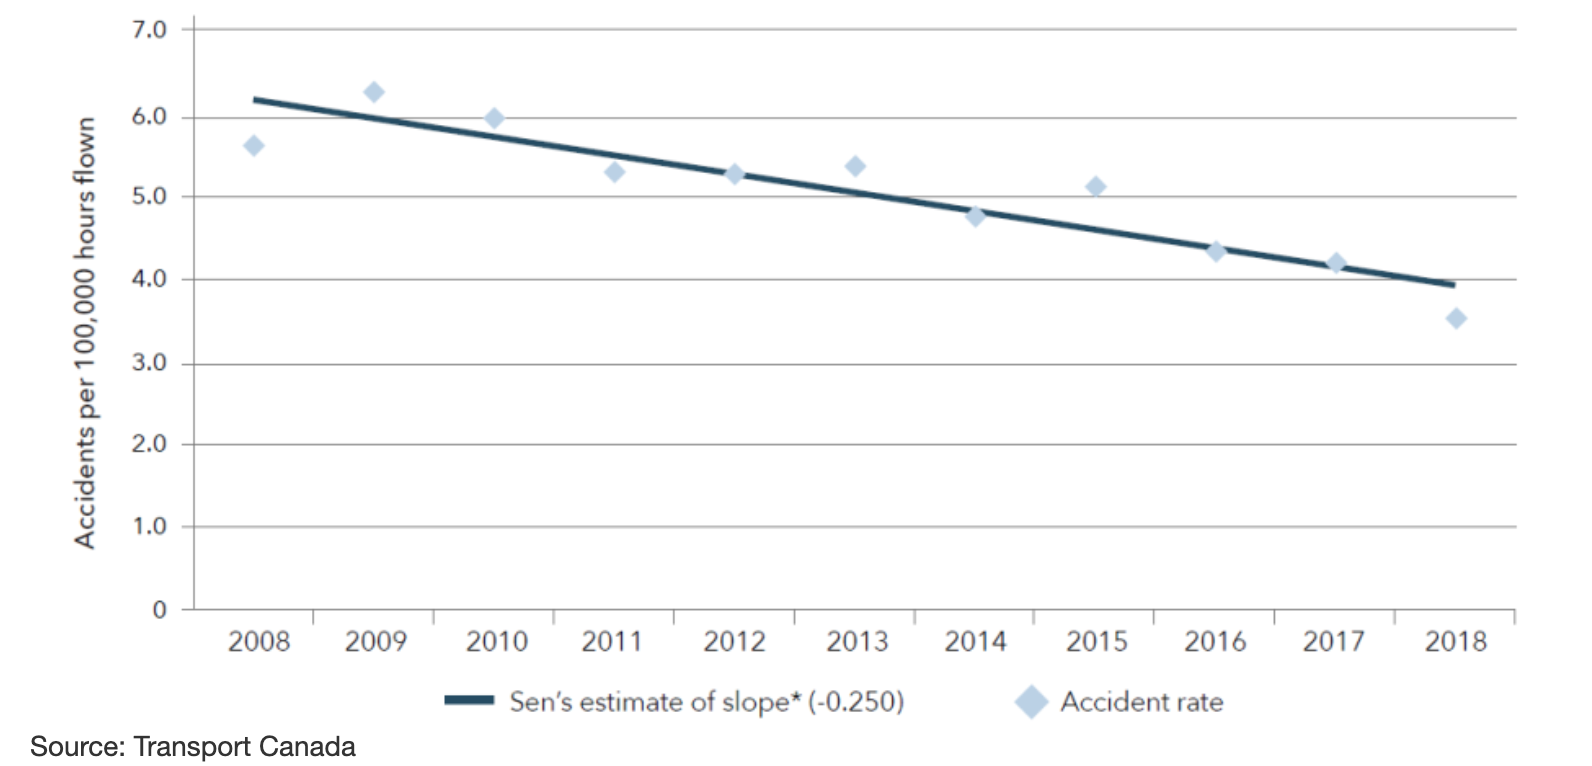 This chart shows the rate of air accidents per 100,000 hours flown, from 2008 - 2018.